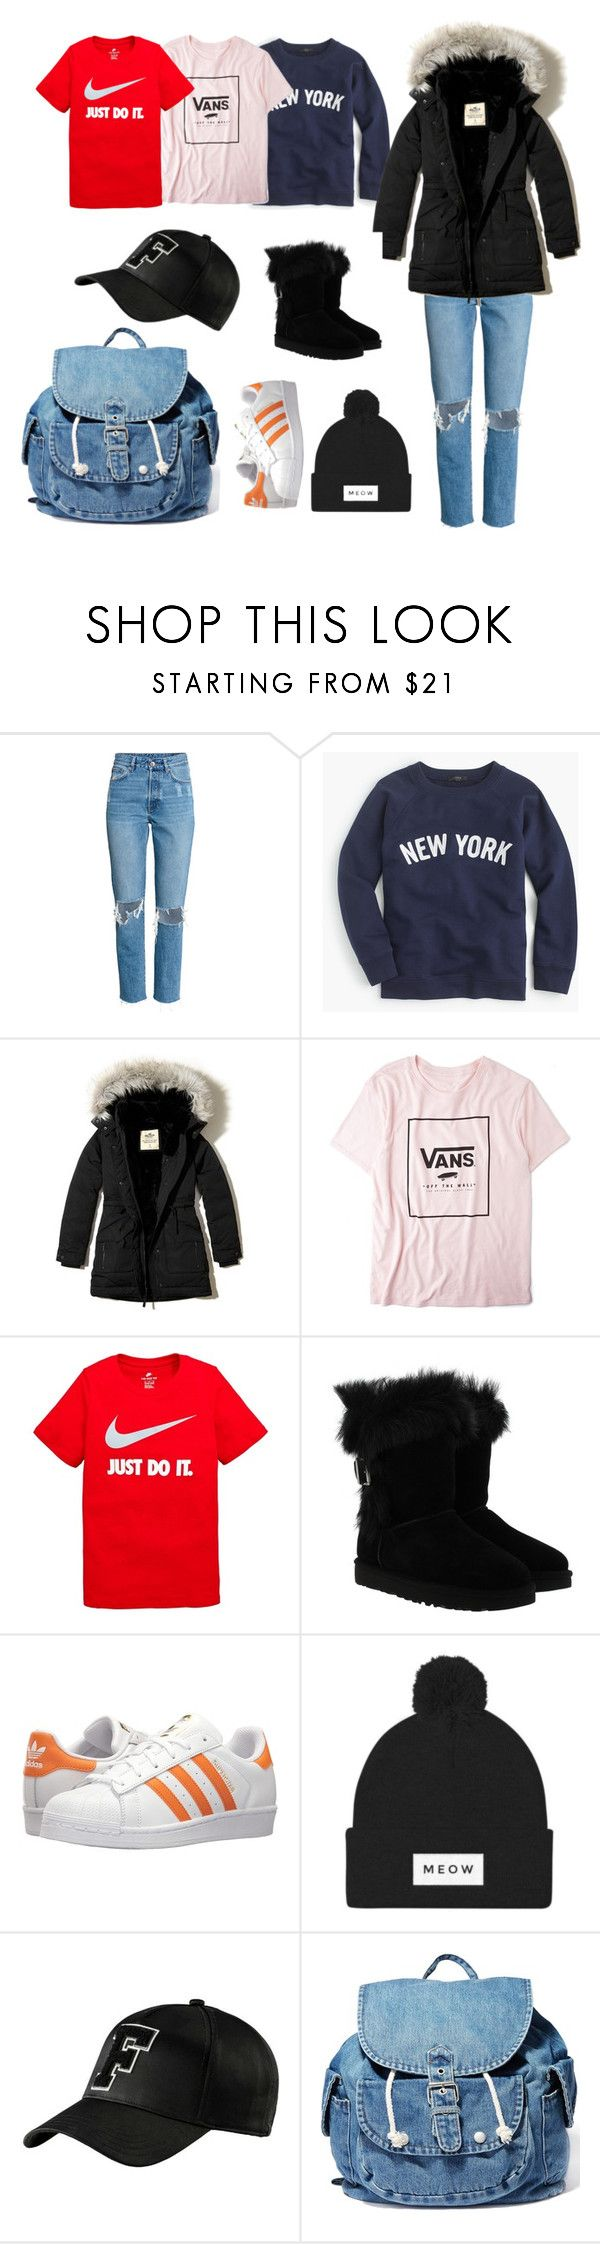 """""""Diamond Lil - Arrival"""" by wishbone454 on Polyvore featuring J.Crew, Hollister Co., Vans, NIKE, UGG, adidas Originals, Puma and Dance & Marvel"""